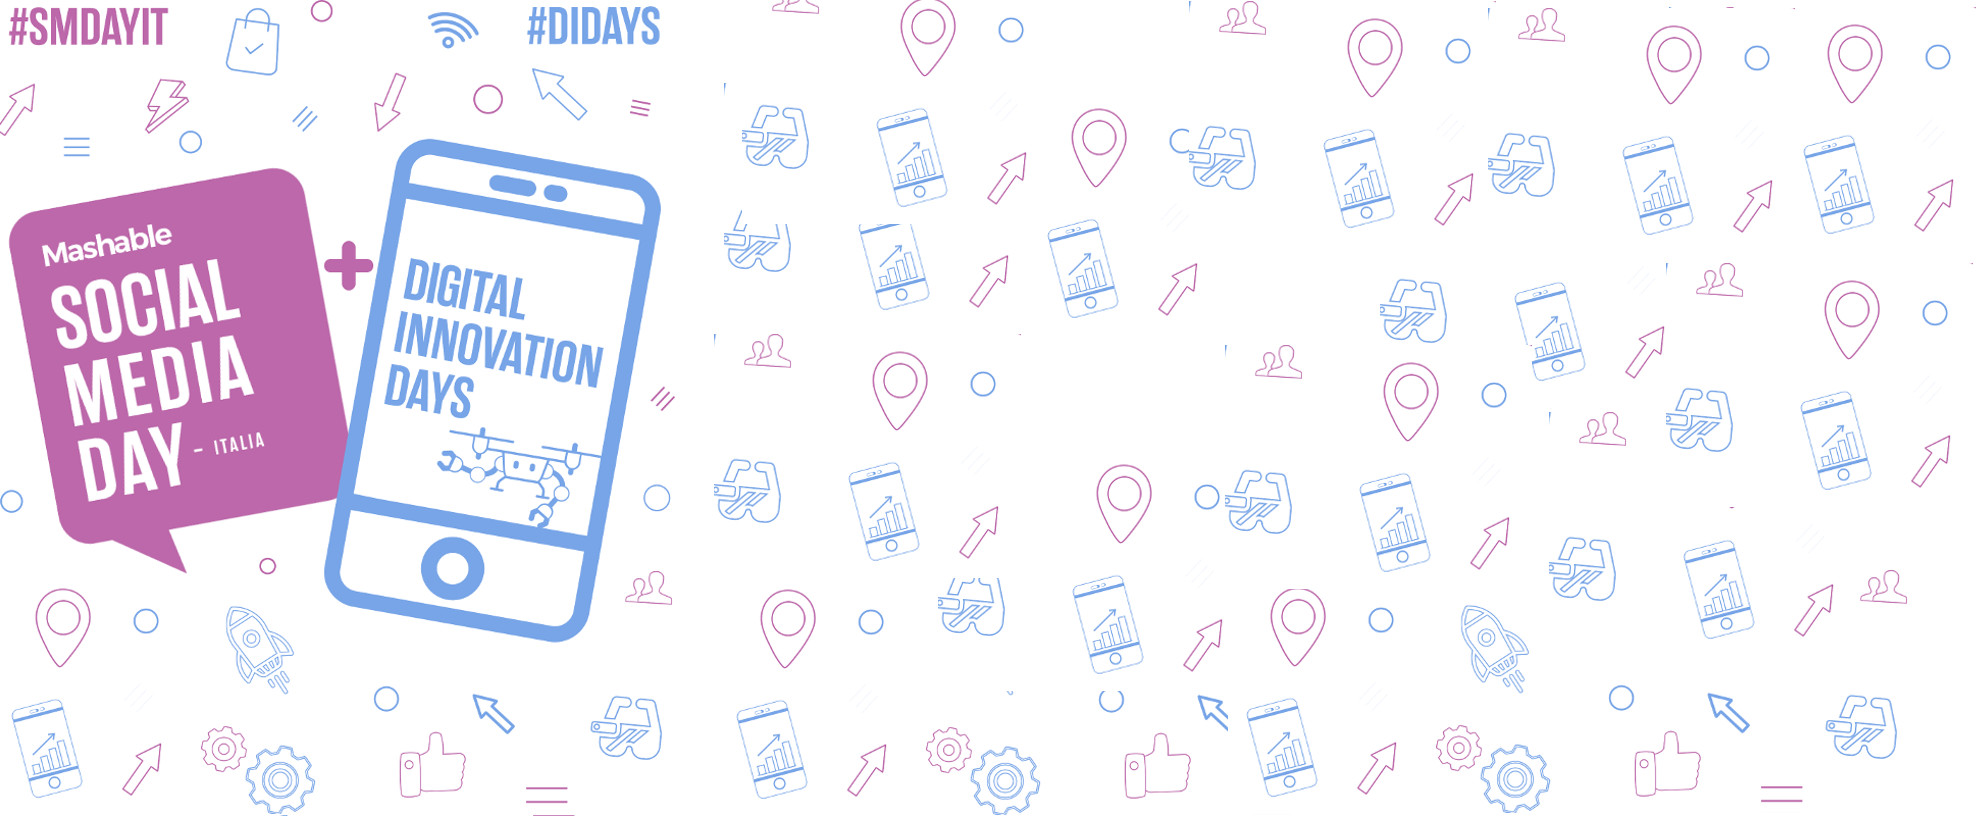 Tornano i Mashable Social Media Days, contaminati dall'innovazione | Radio24